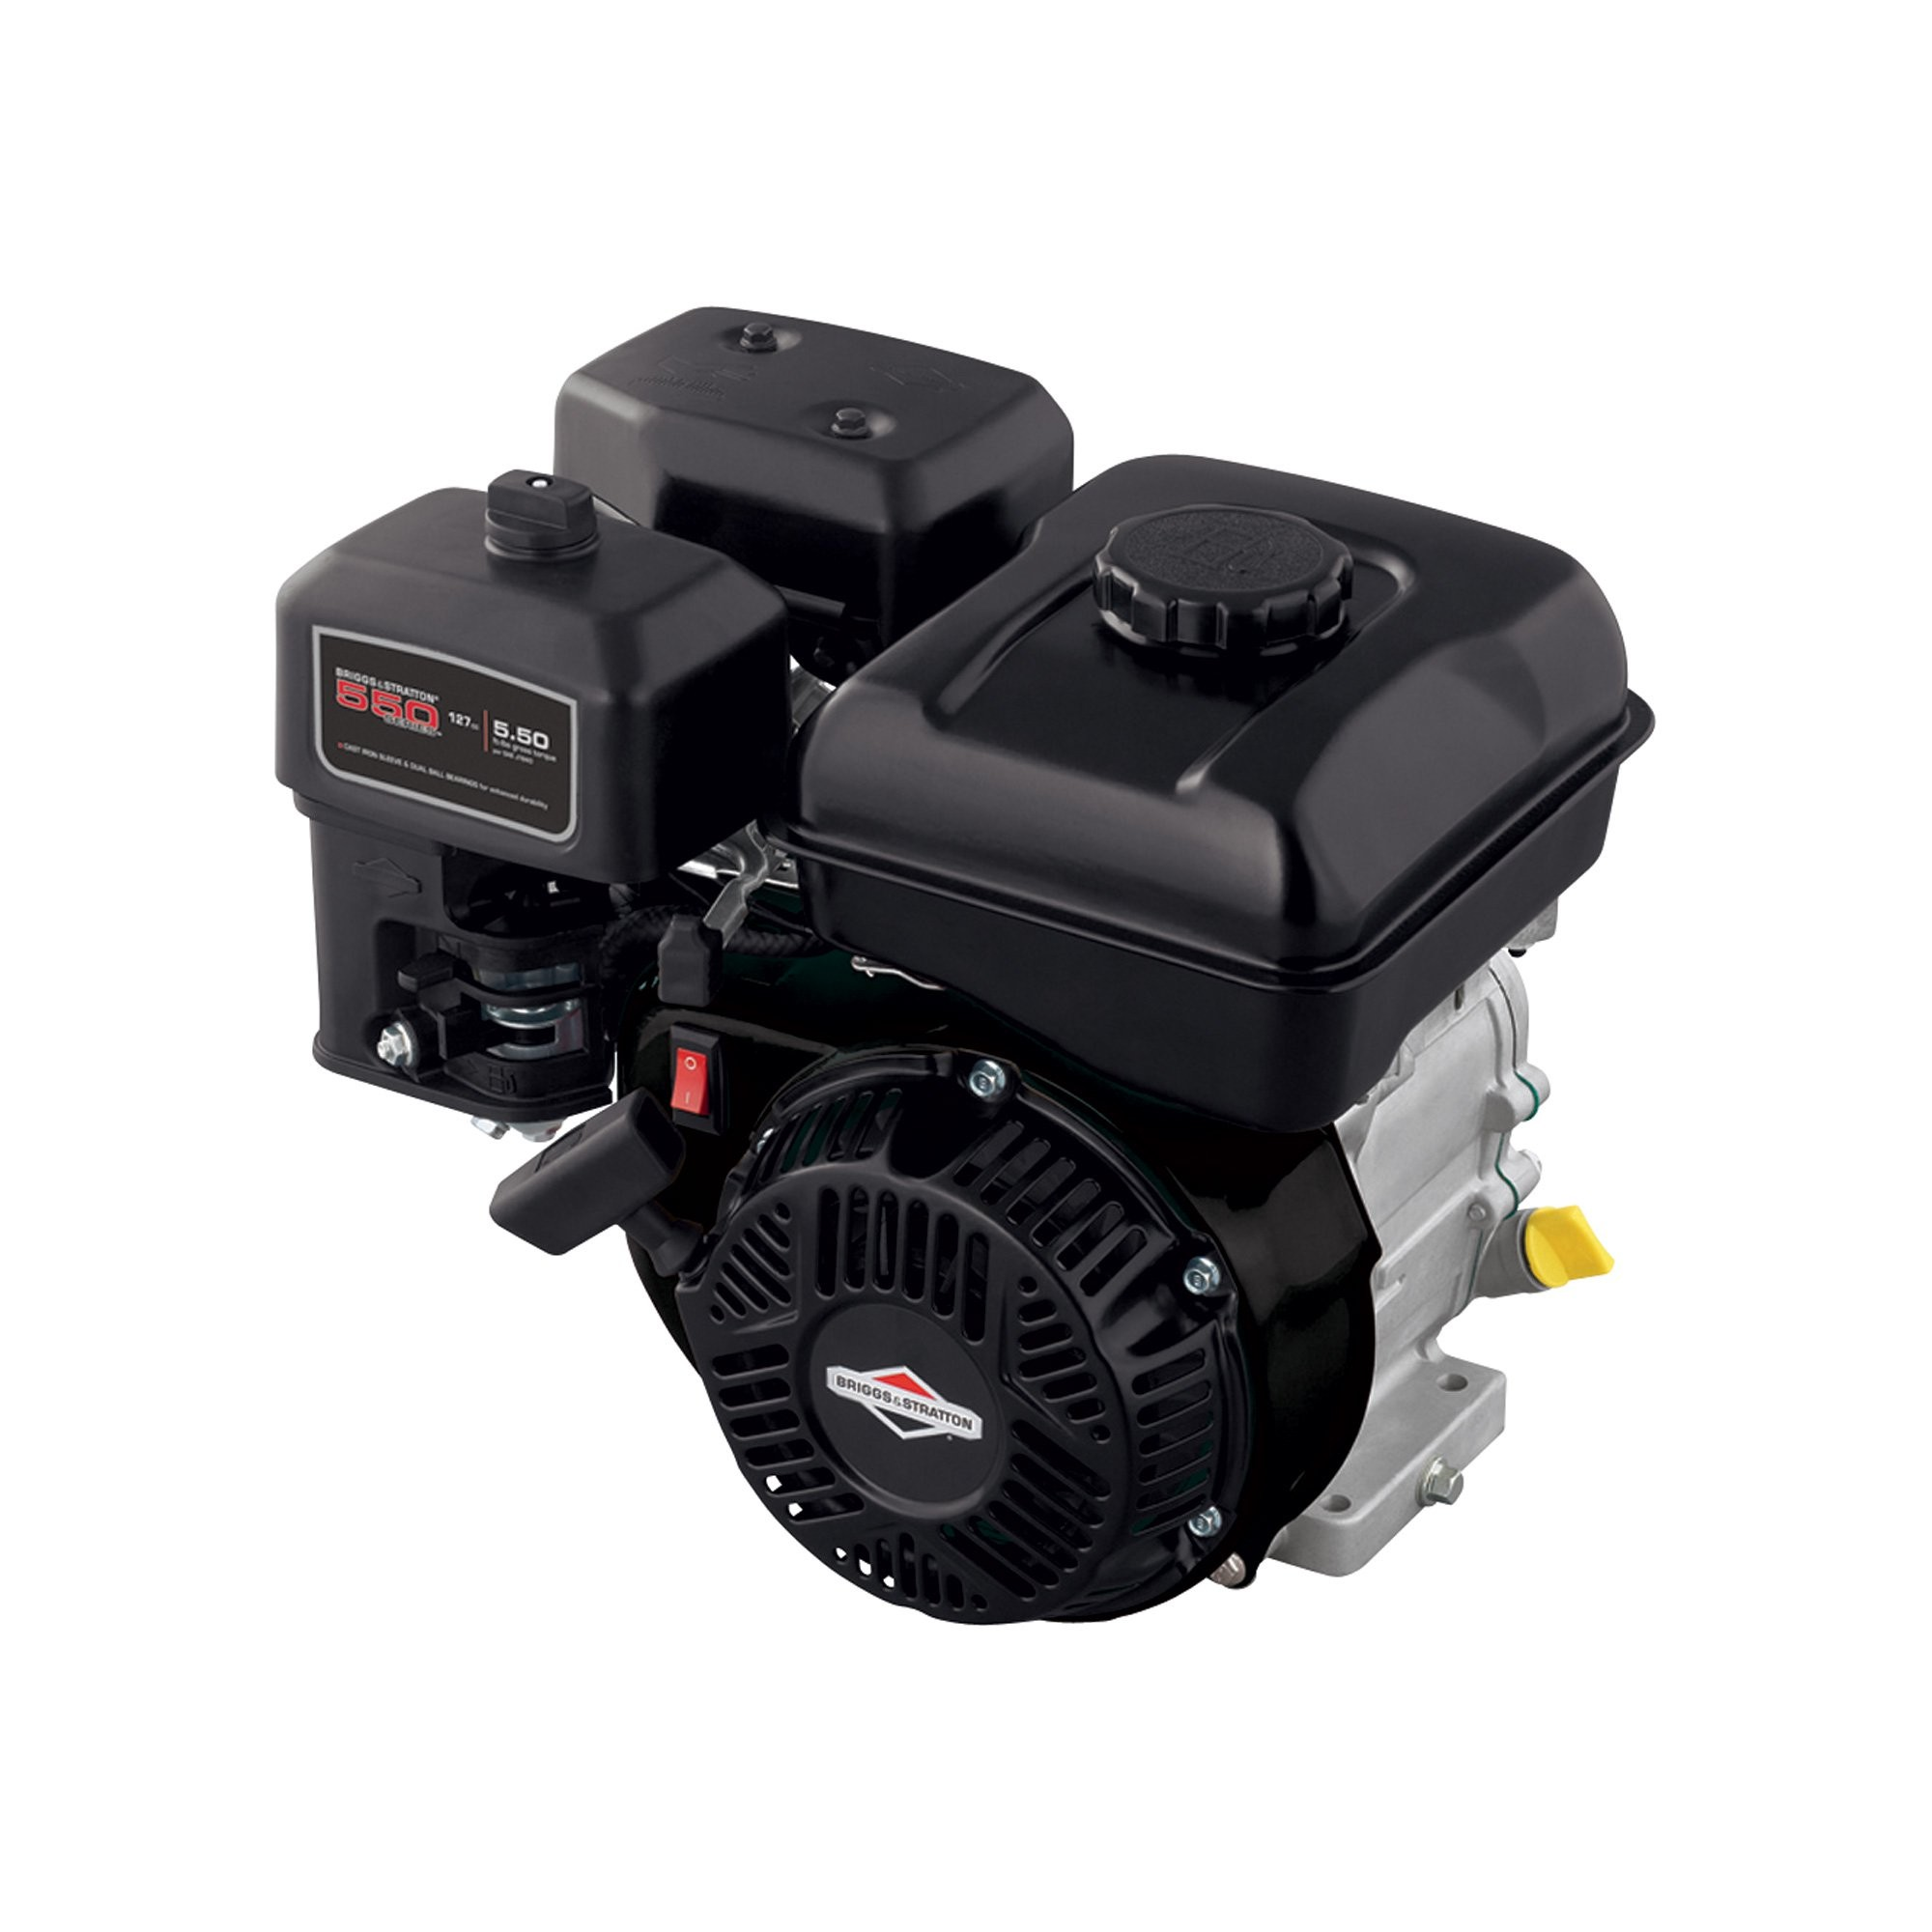 Briggs and Stratton 11 Hp Engine Diagram Briggs & Stratton 550 Series Horizontal Ohv Engine — 127cc 5 8in X Of Briggs and Stratton 11 Hp Engine Diagram